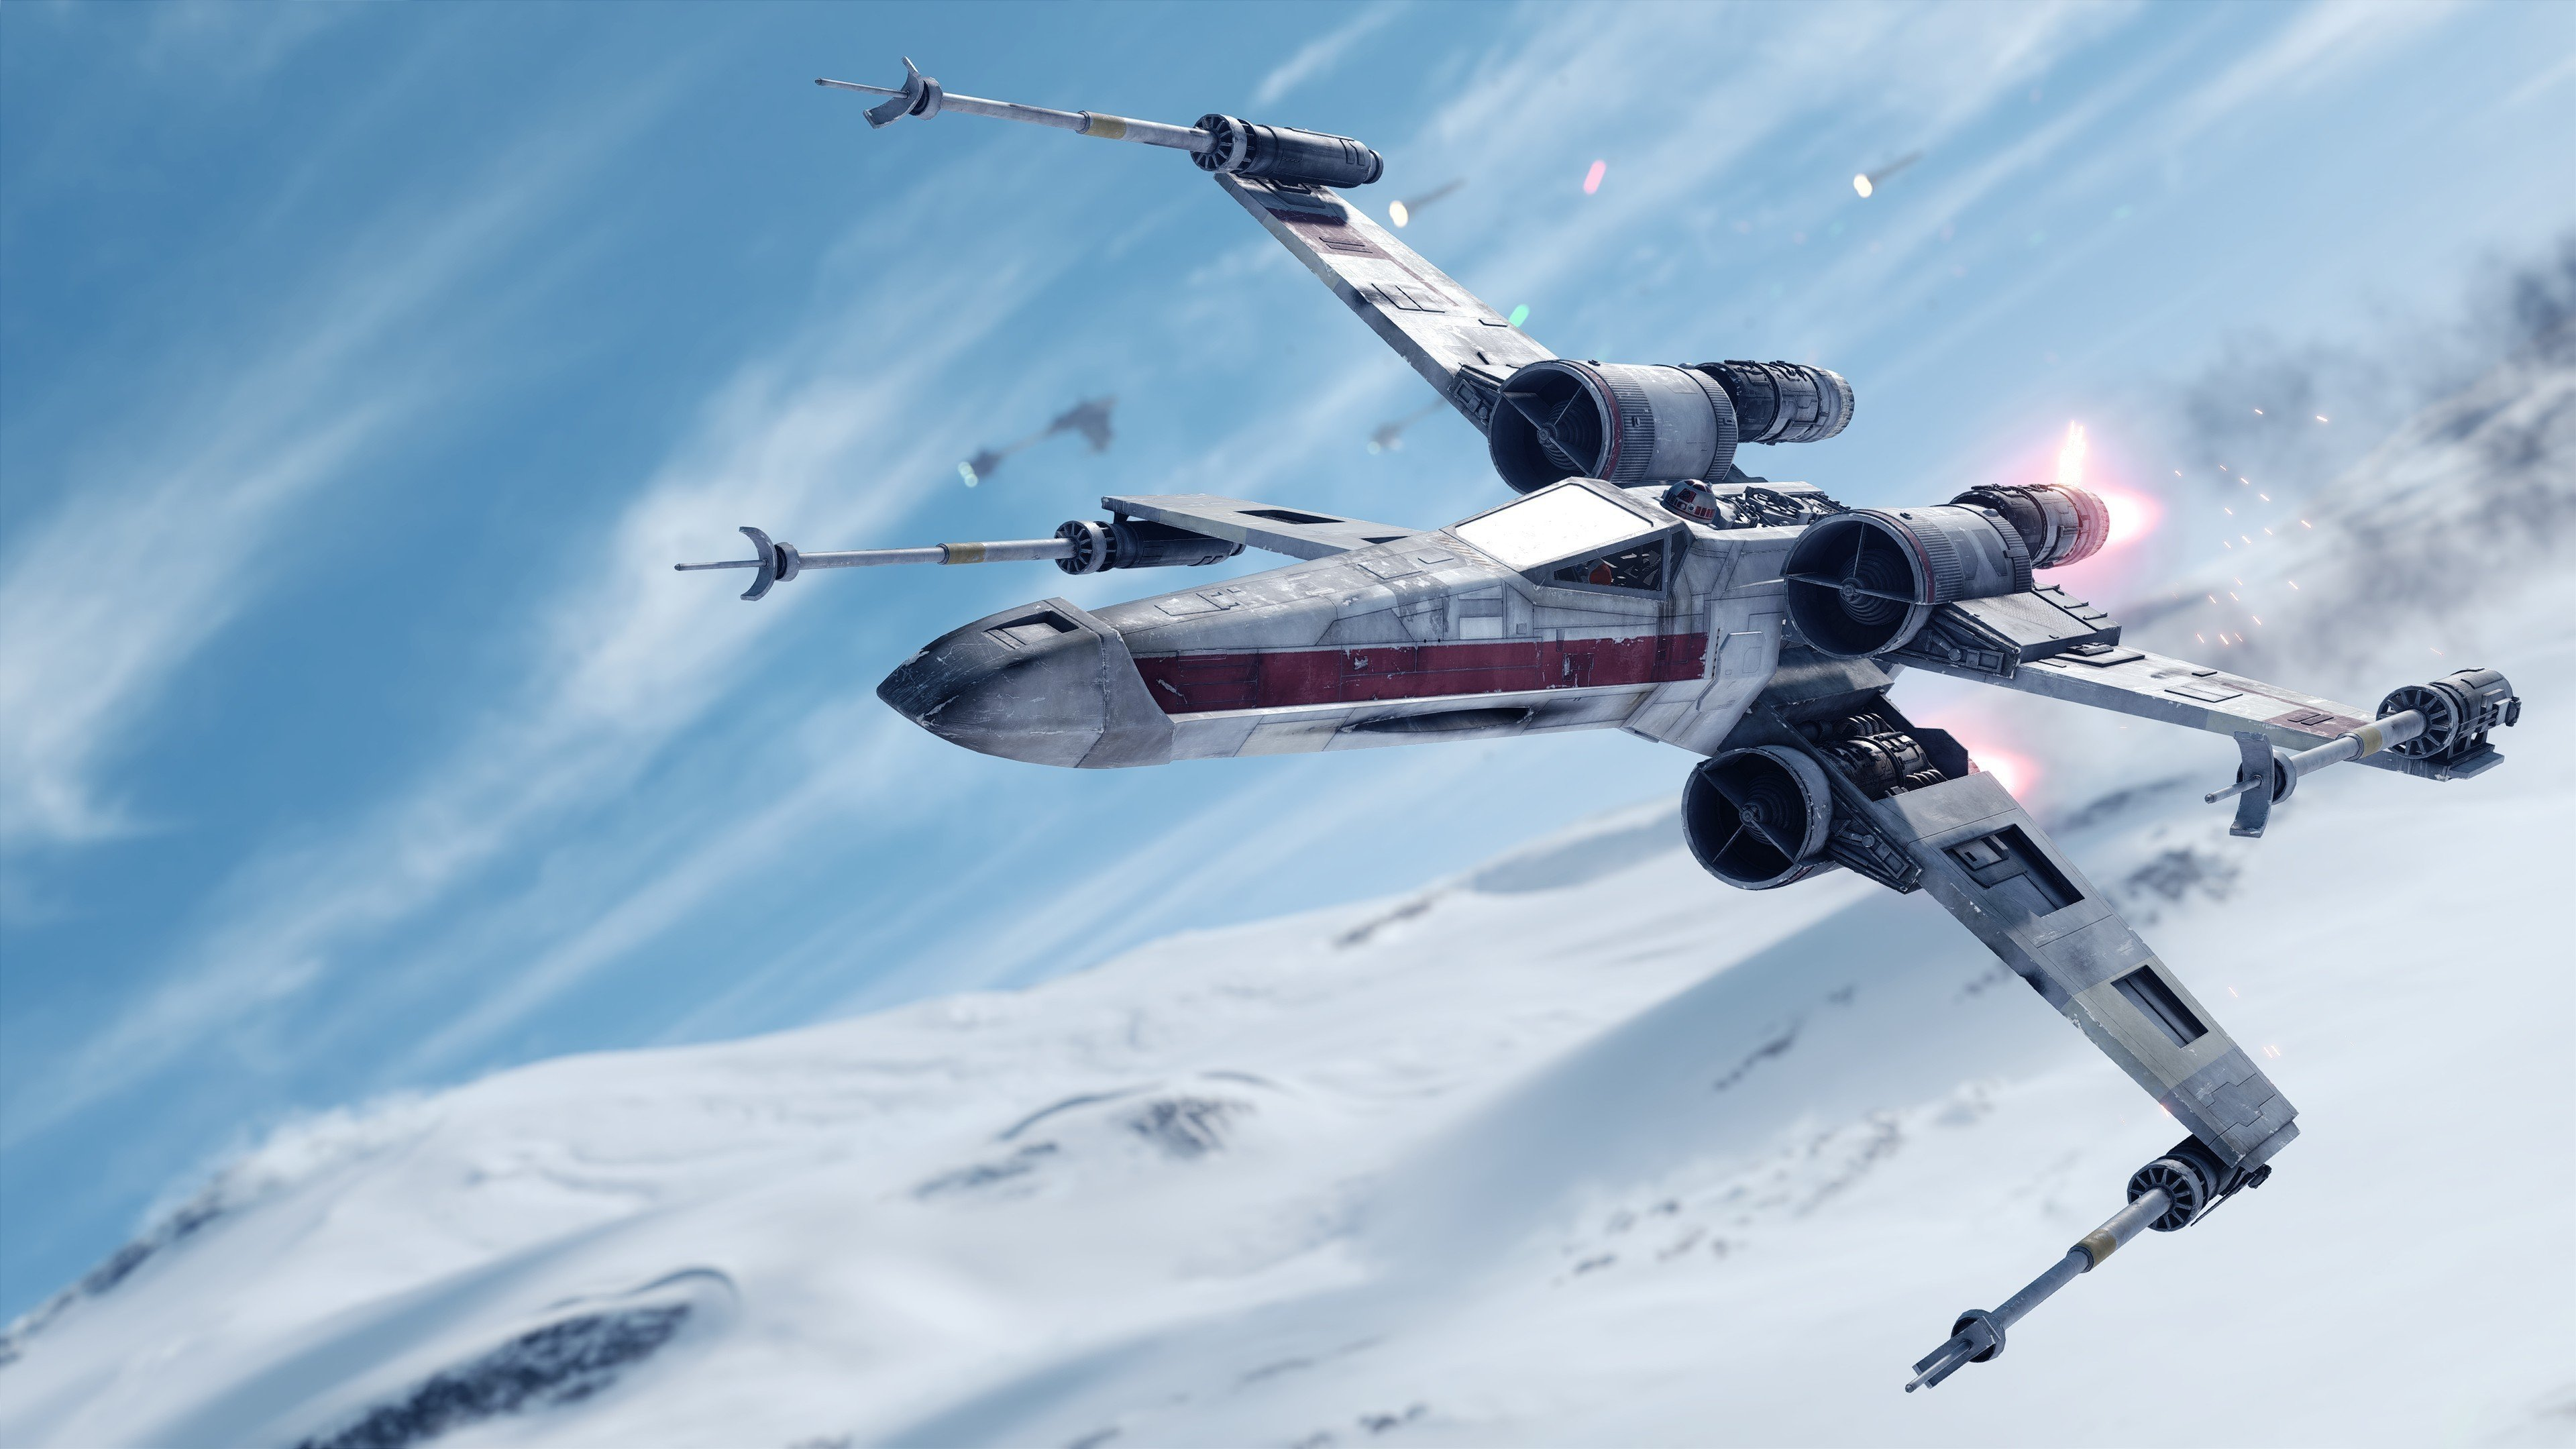 Star Wars X Wing Hd Wallpapers Desktop And Mobile Images Photos